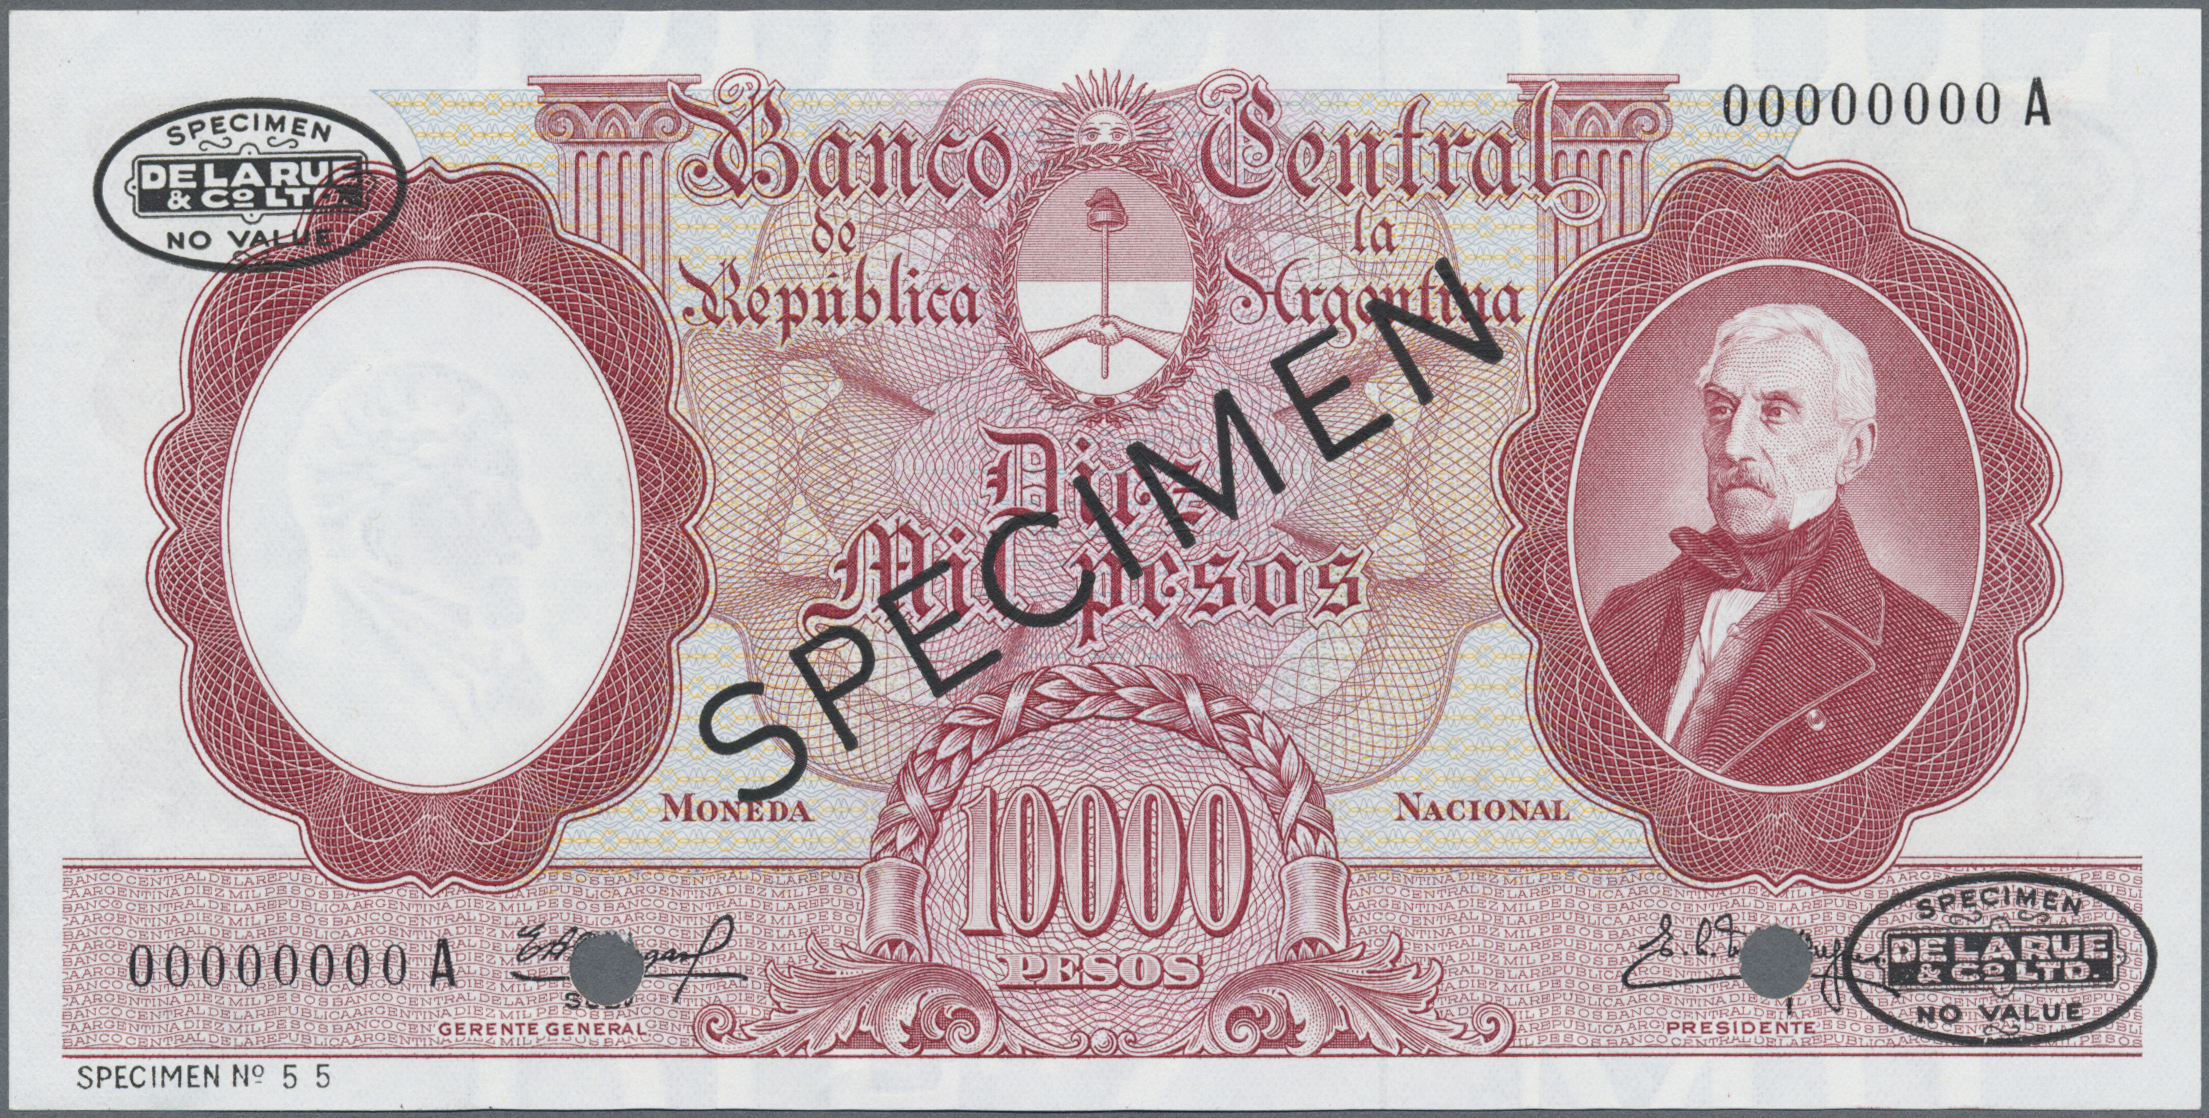 Lot 00016 - Argentina / Argentinien | Banknoten  -  Auktionshaus Christoph Gärtner GmbH & Co. KG Sale #48 The Banknotes